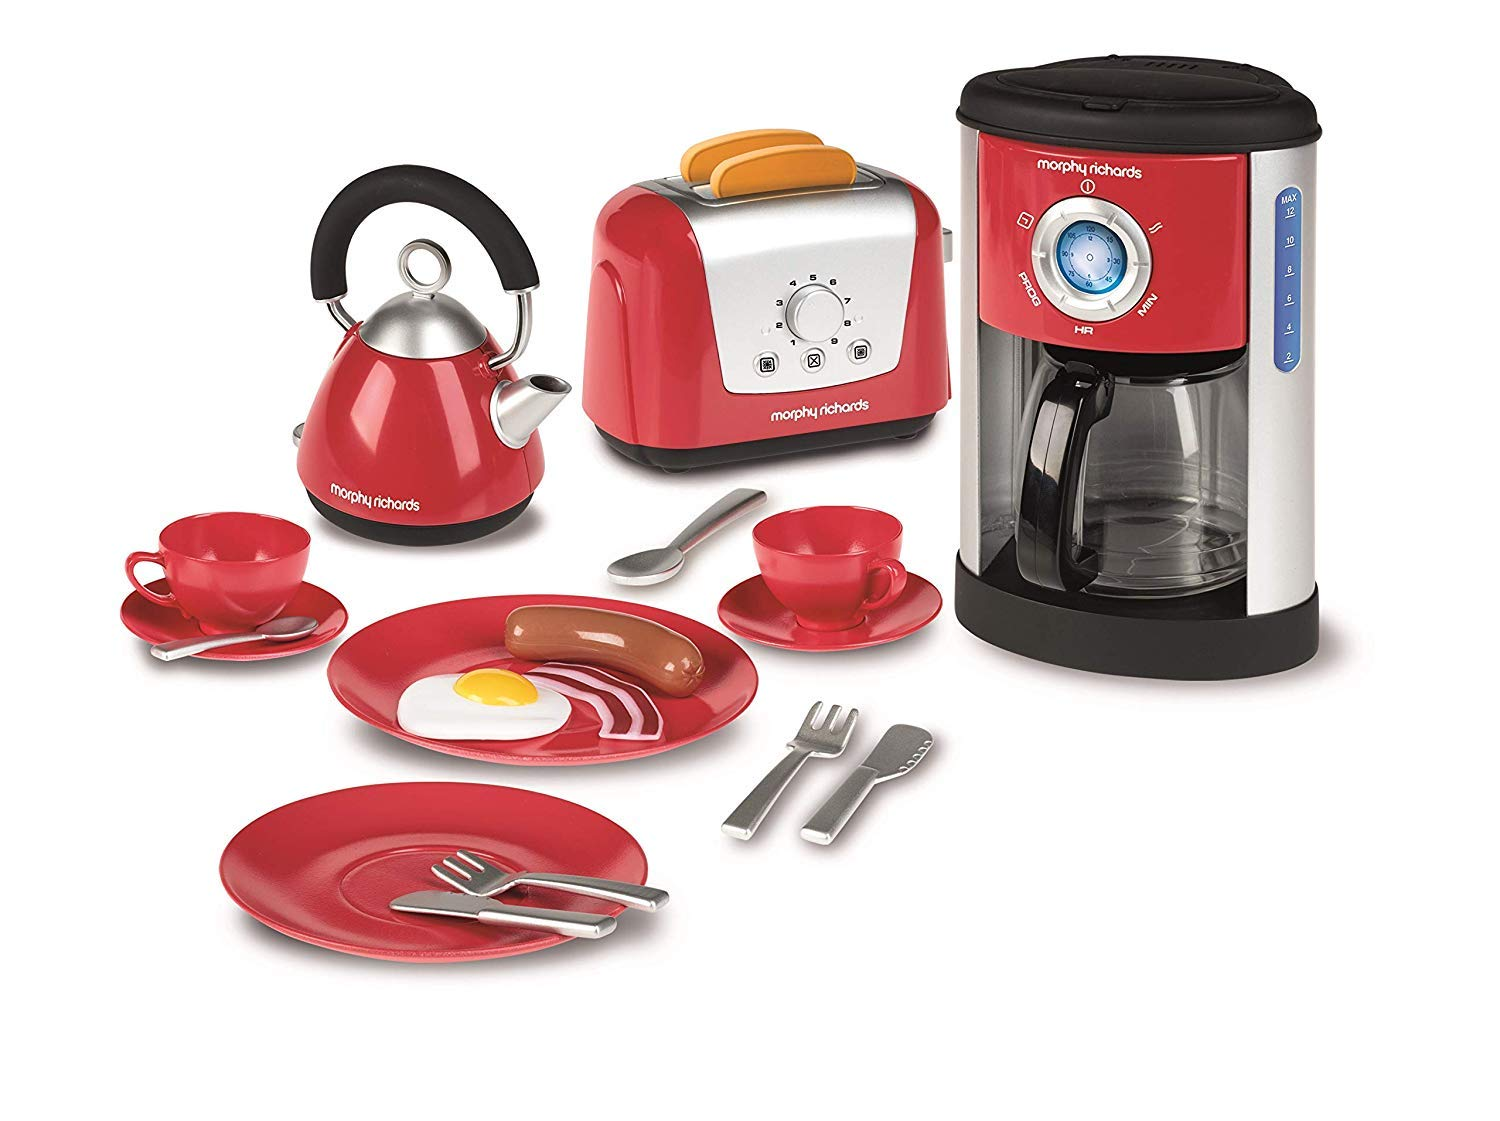 Casdon Morphy Richards Kitchen Set Toy - Kettle, Toaster and Coffee Machine by CASDON